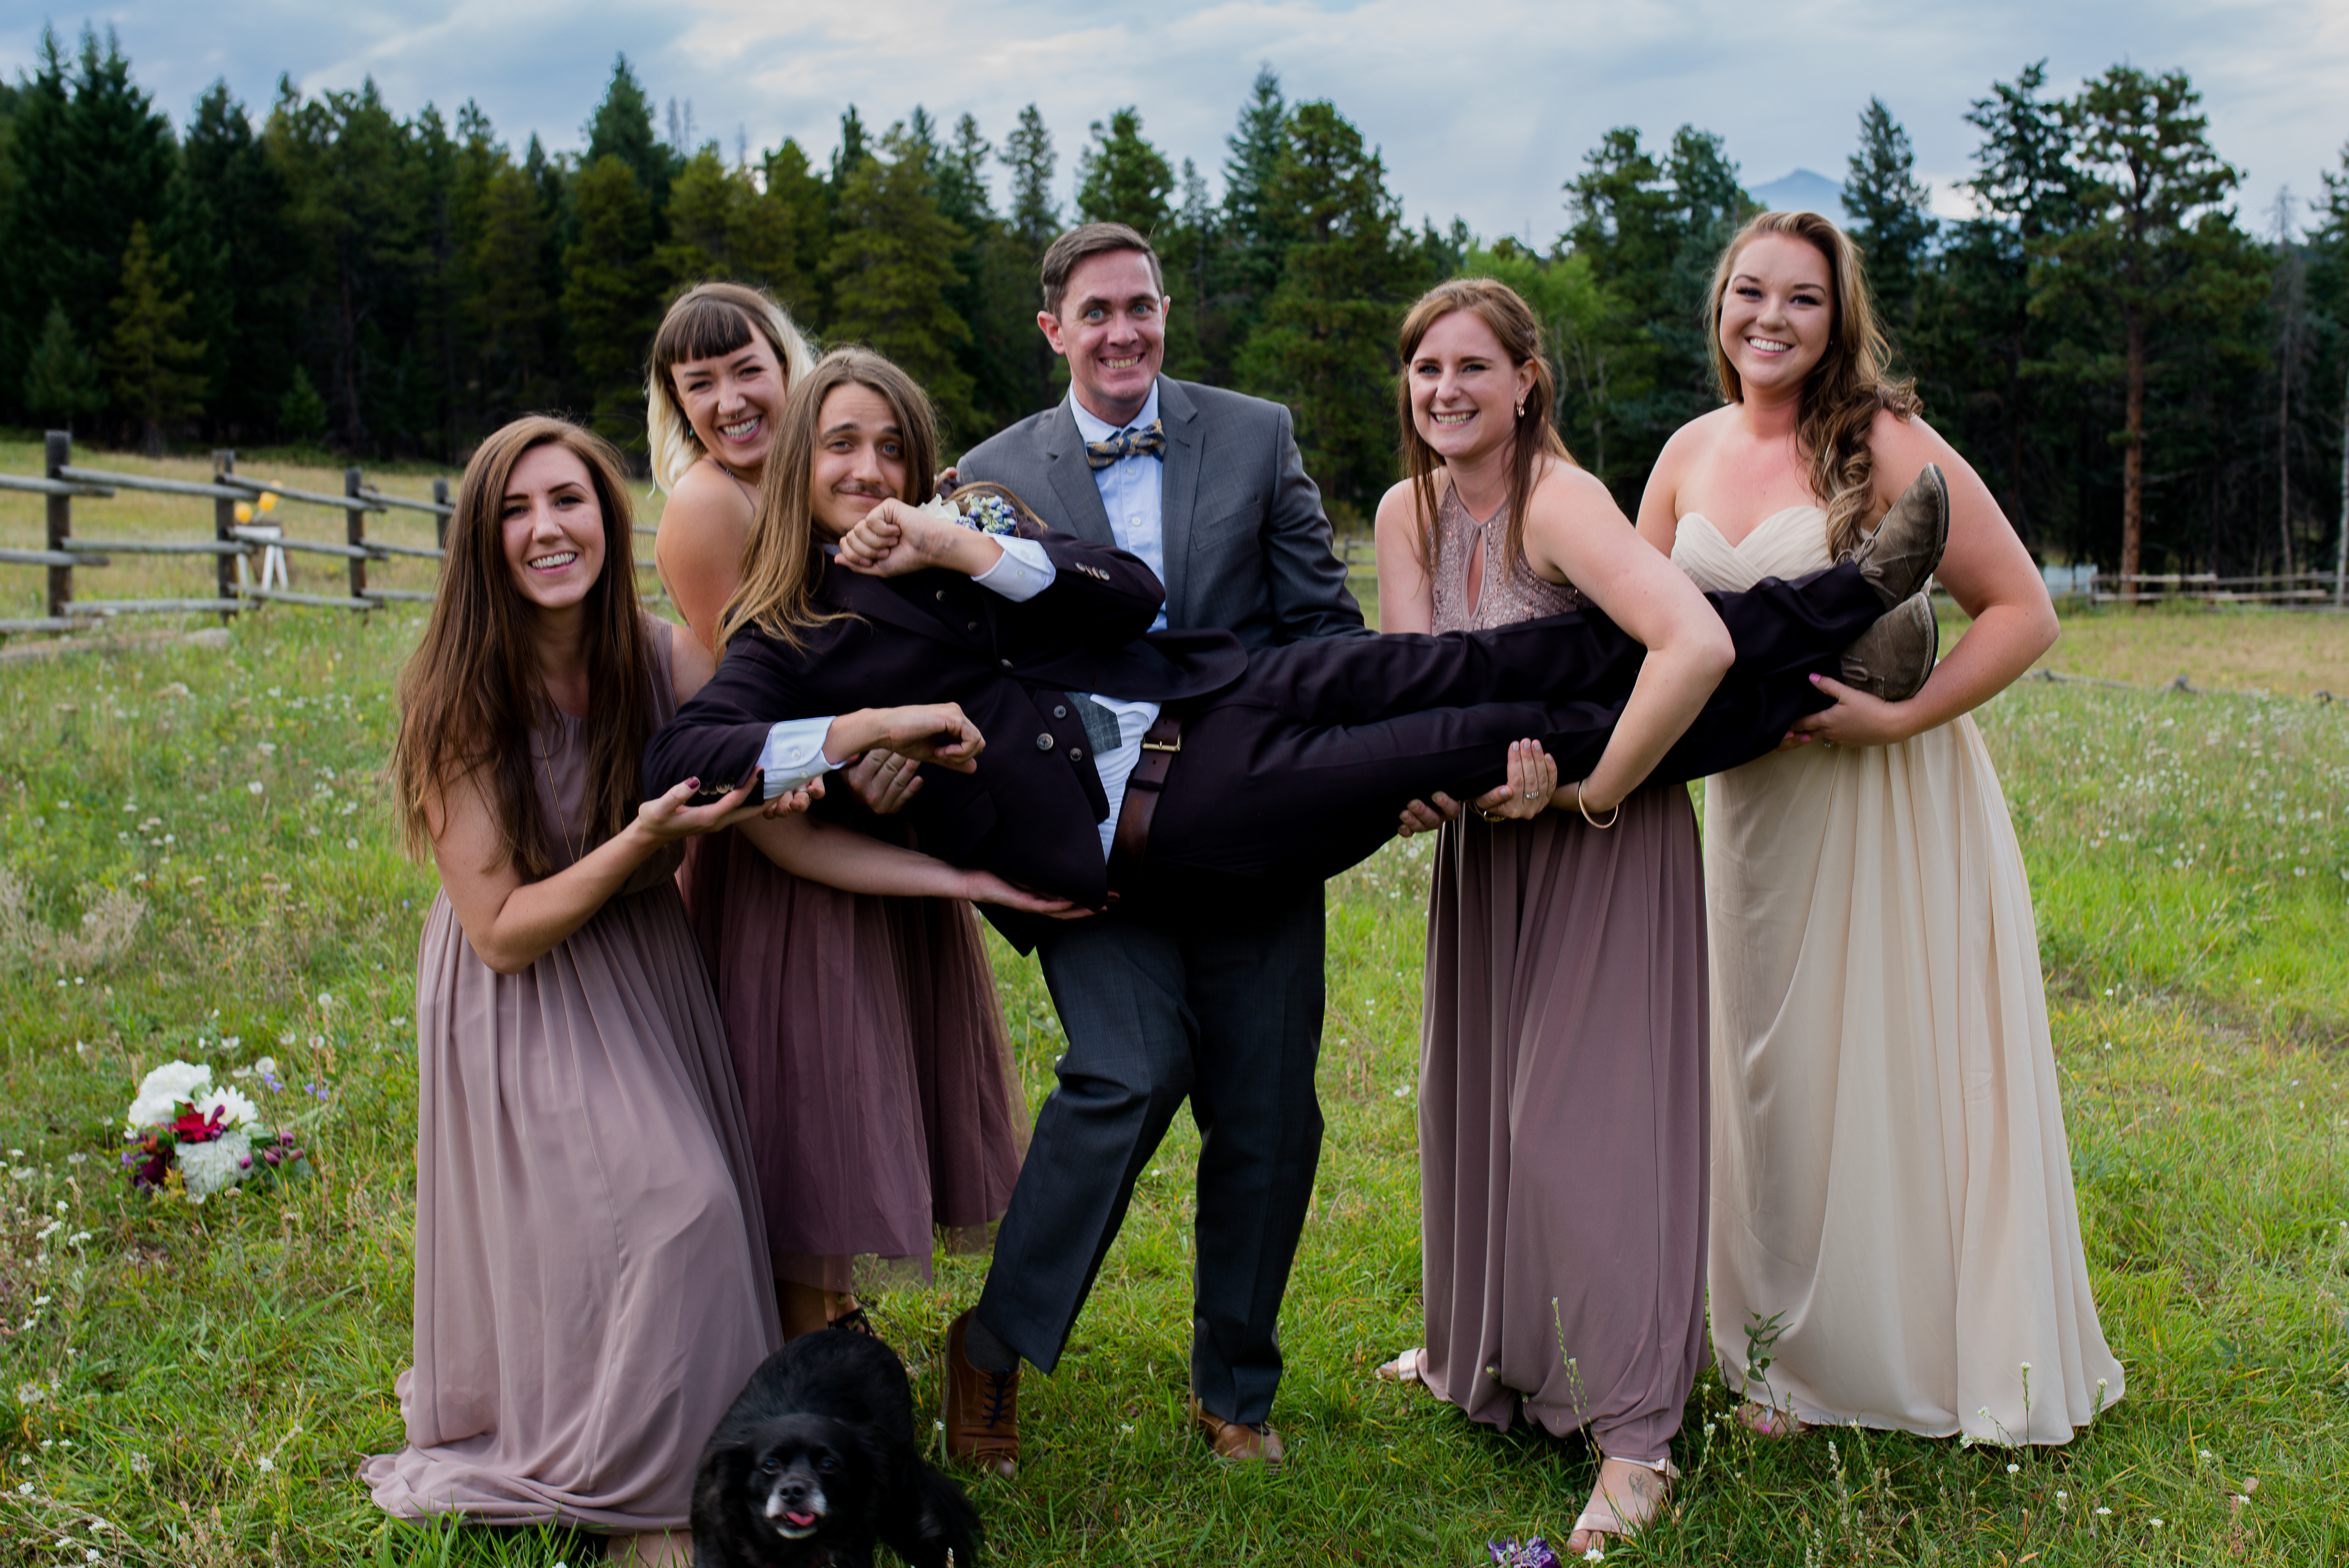 The bridesmaids carrying the groom